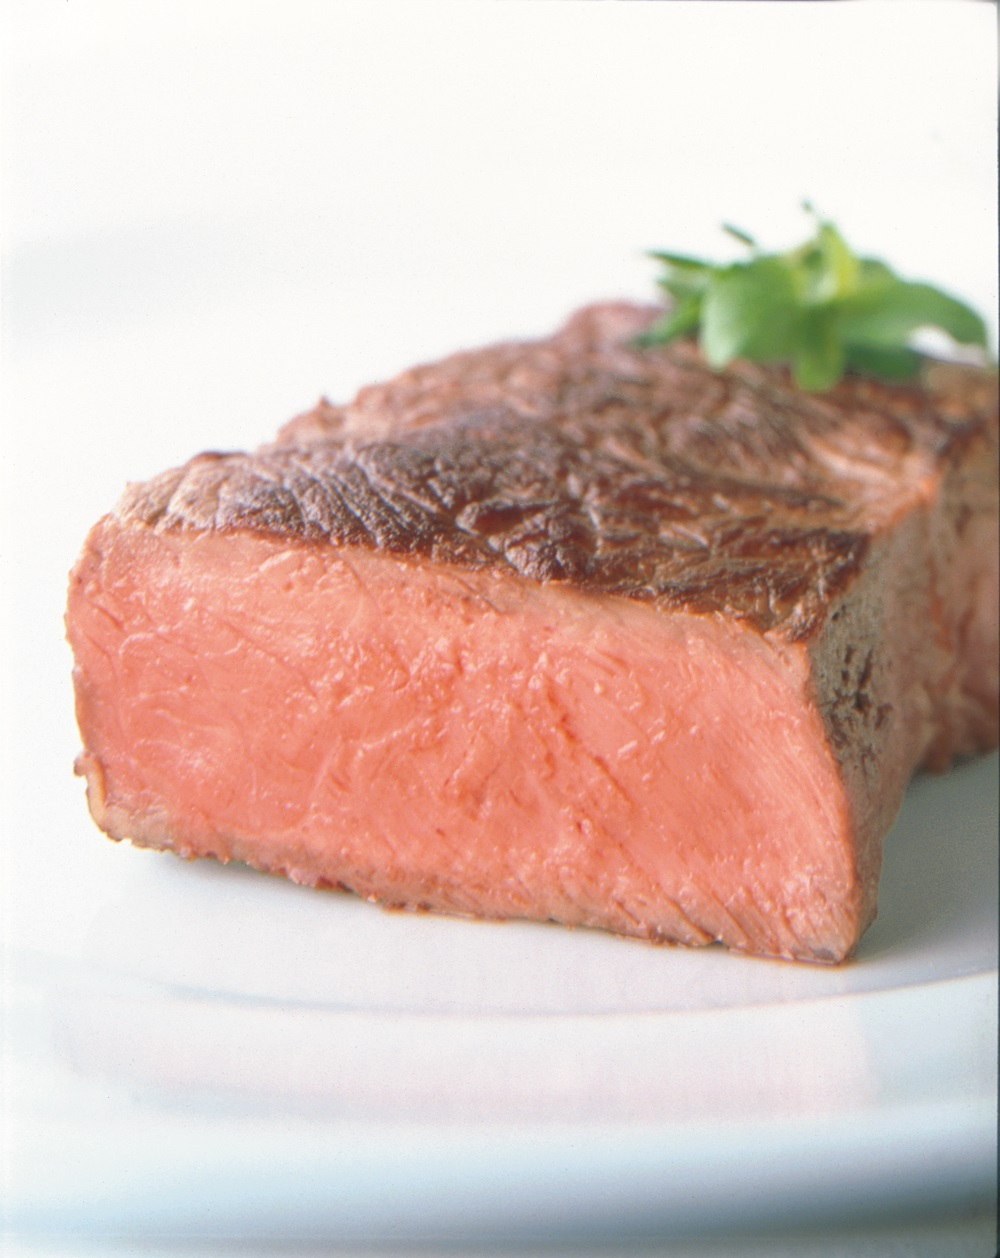 Medium Rare Rare Or Well Done Find Out About Steak Doneness